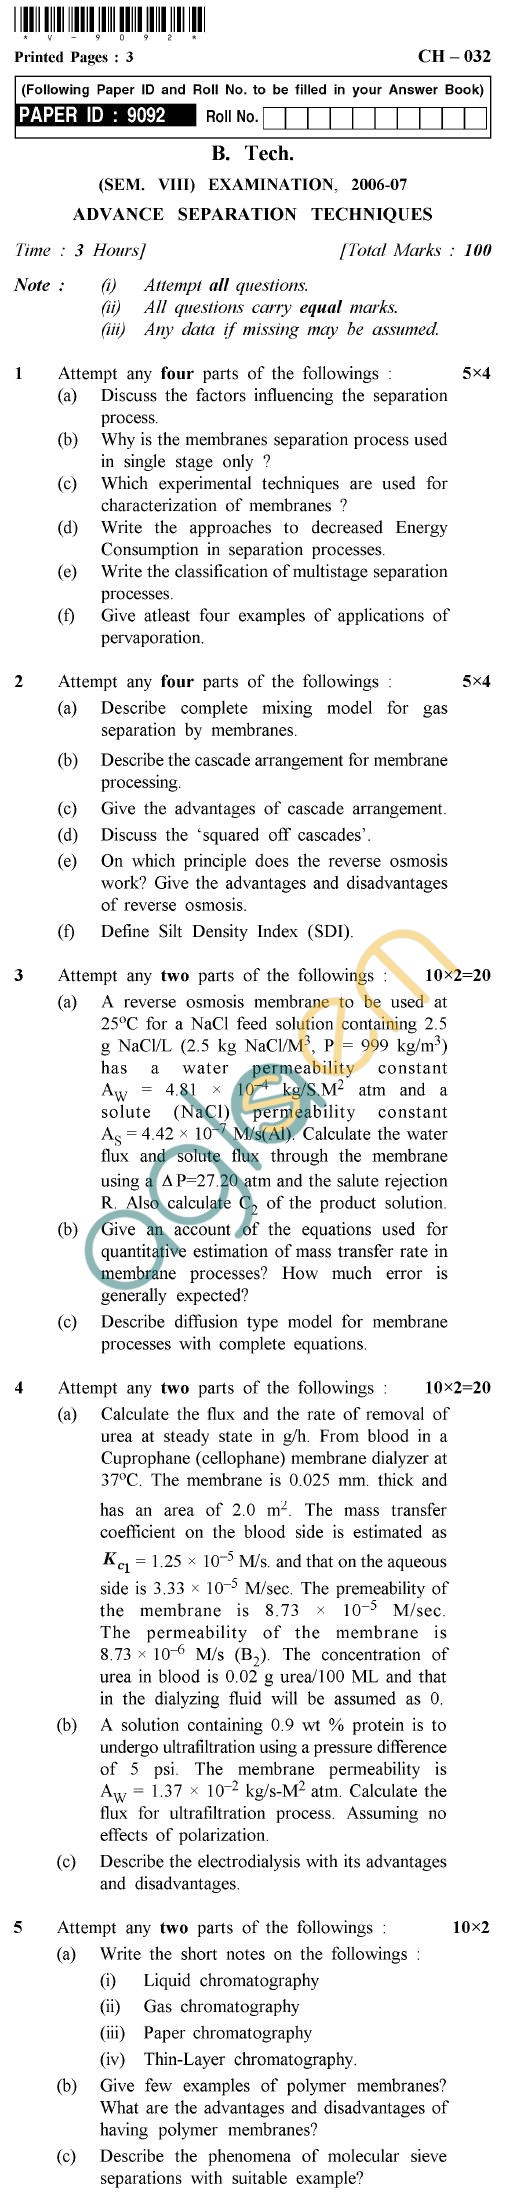 UPTU B.Tech Question Papers - CH-032 - Advance Separation Techniques